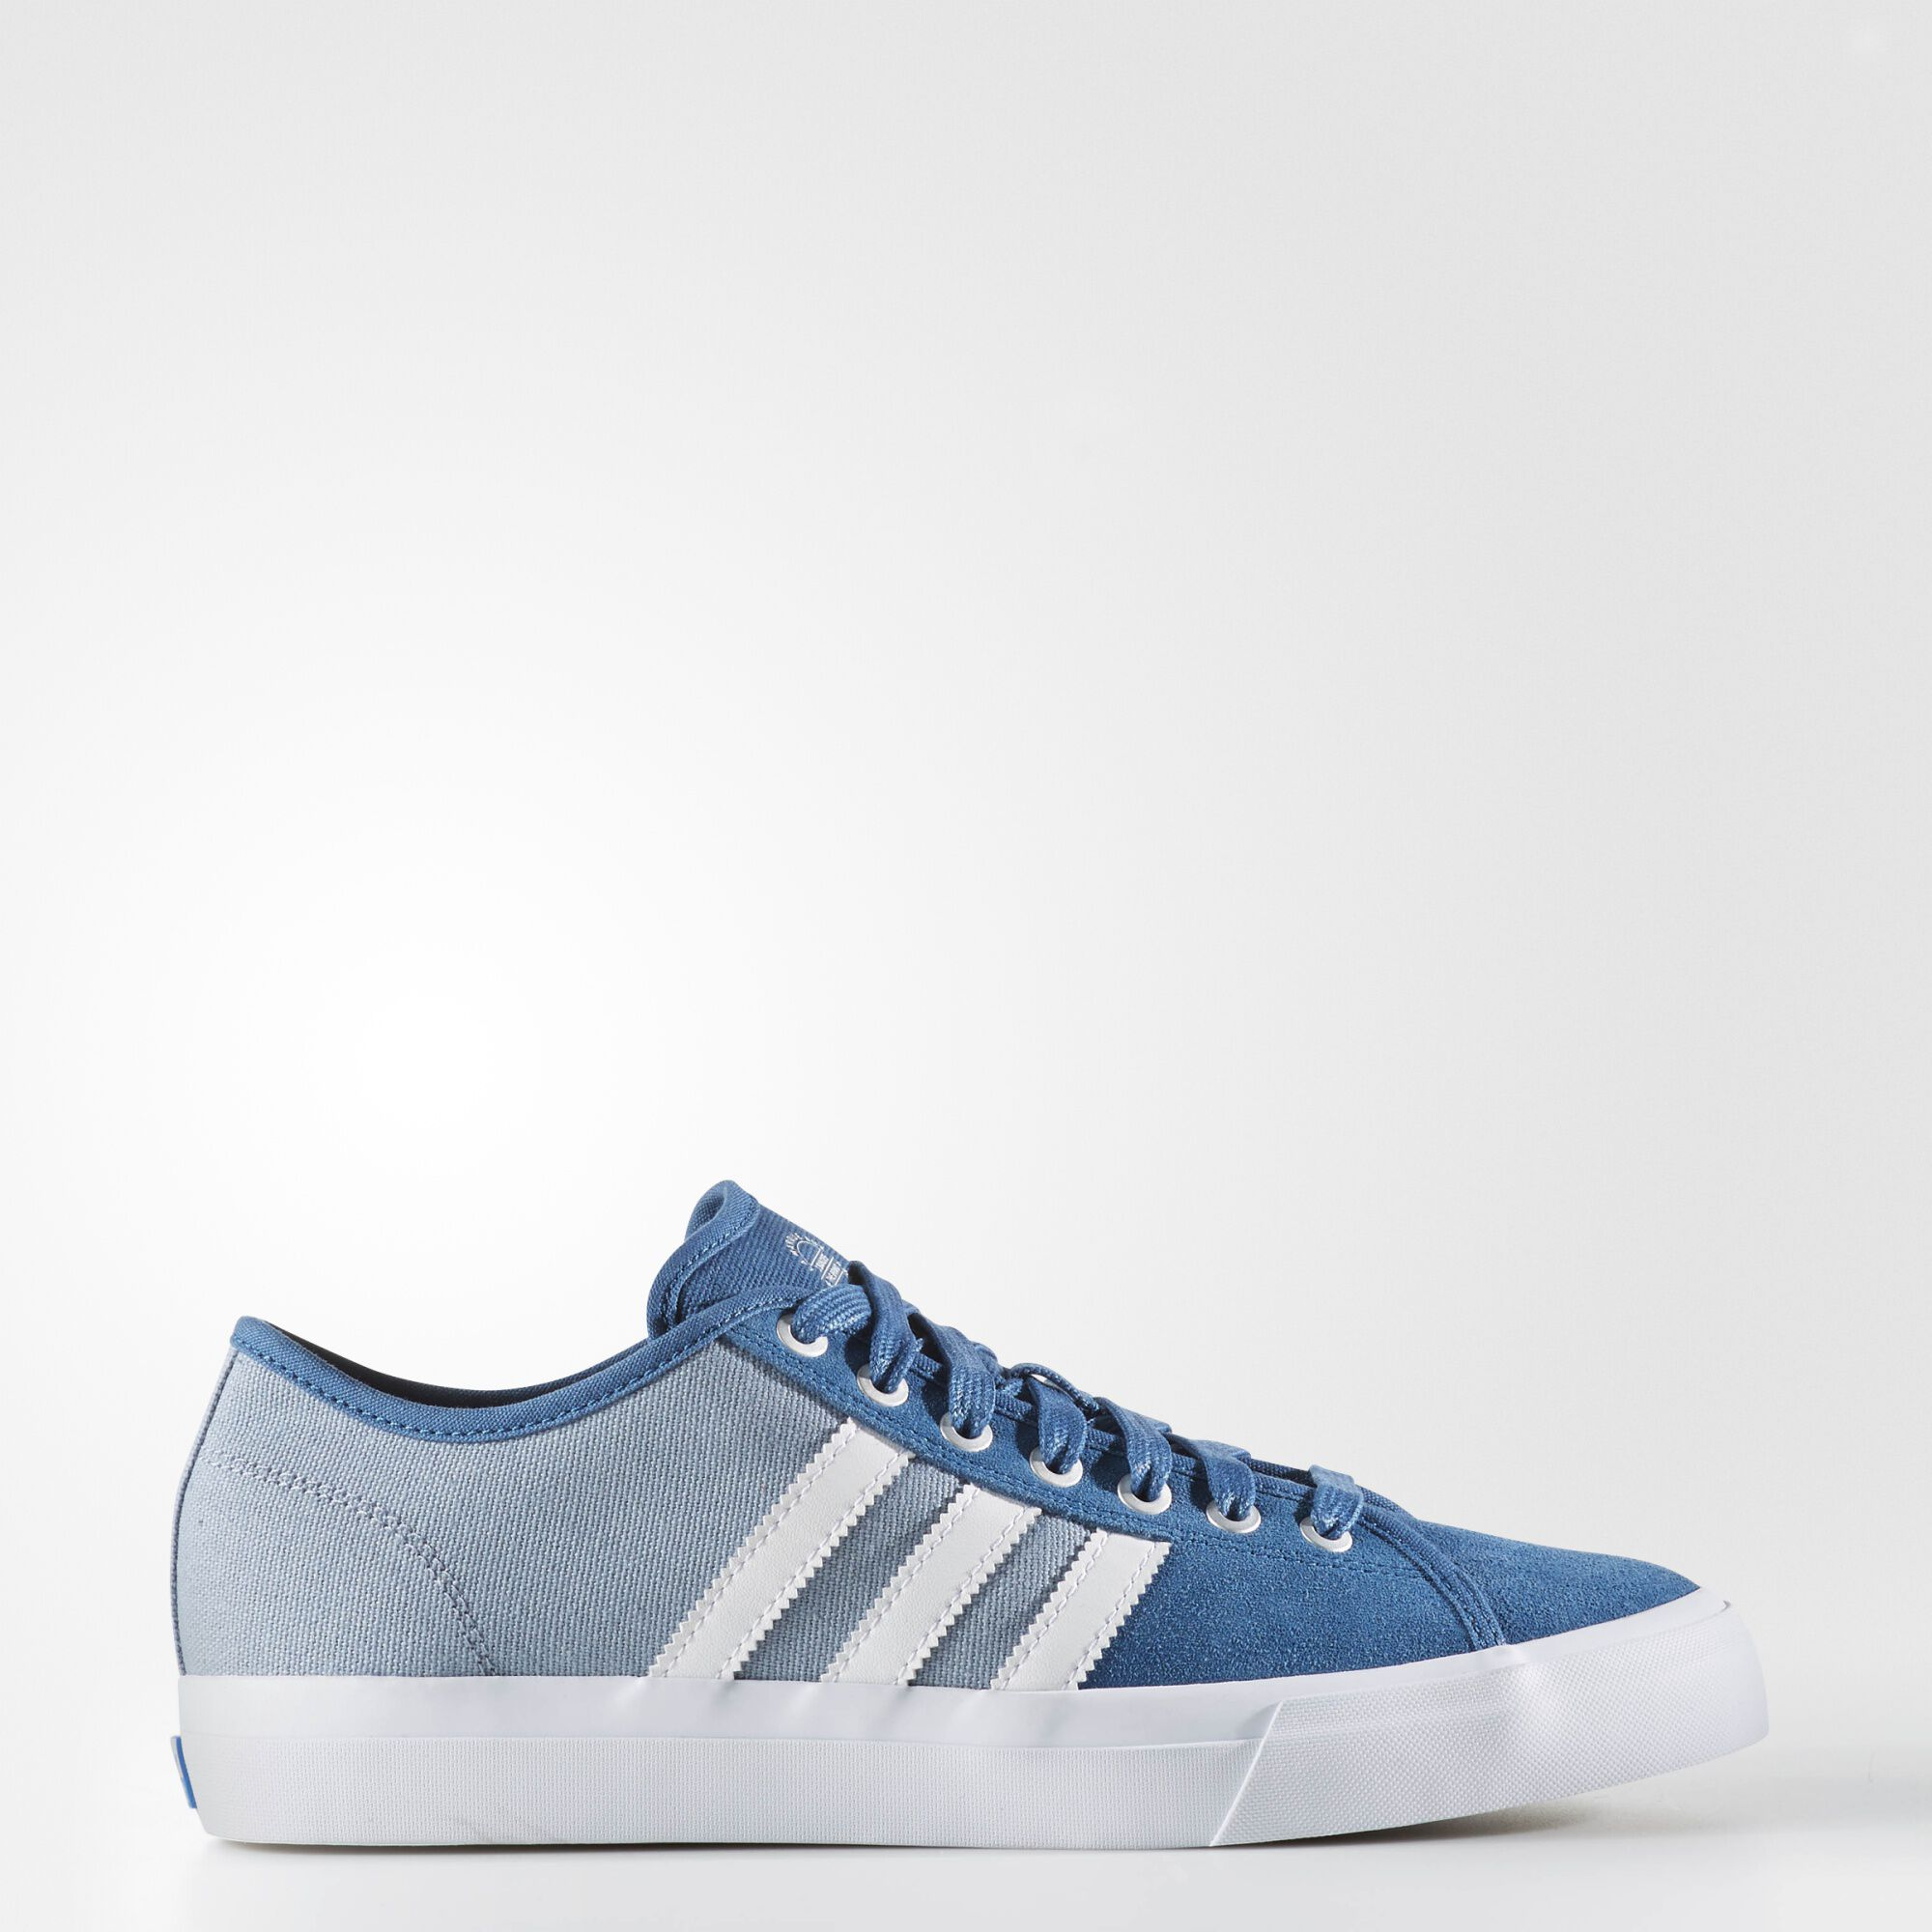 Adidas Shoes Pics With Price